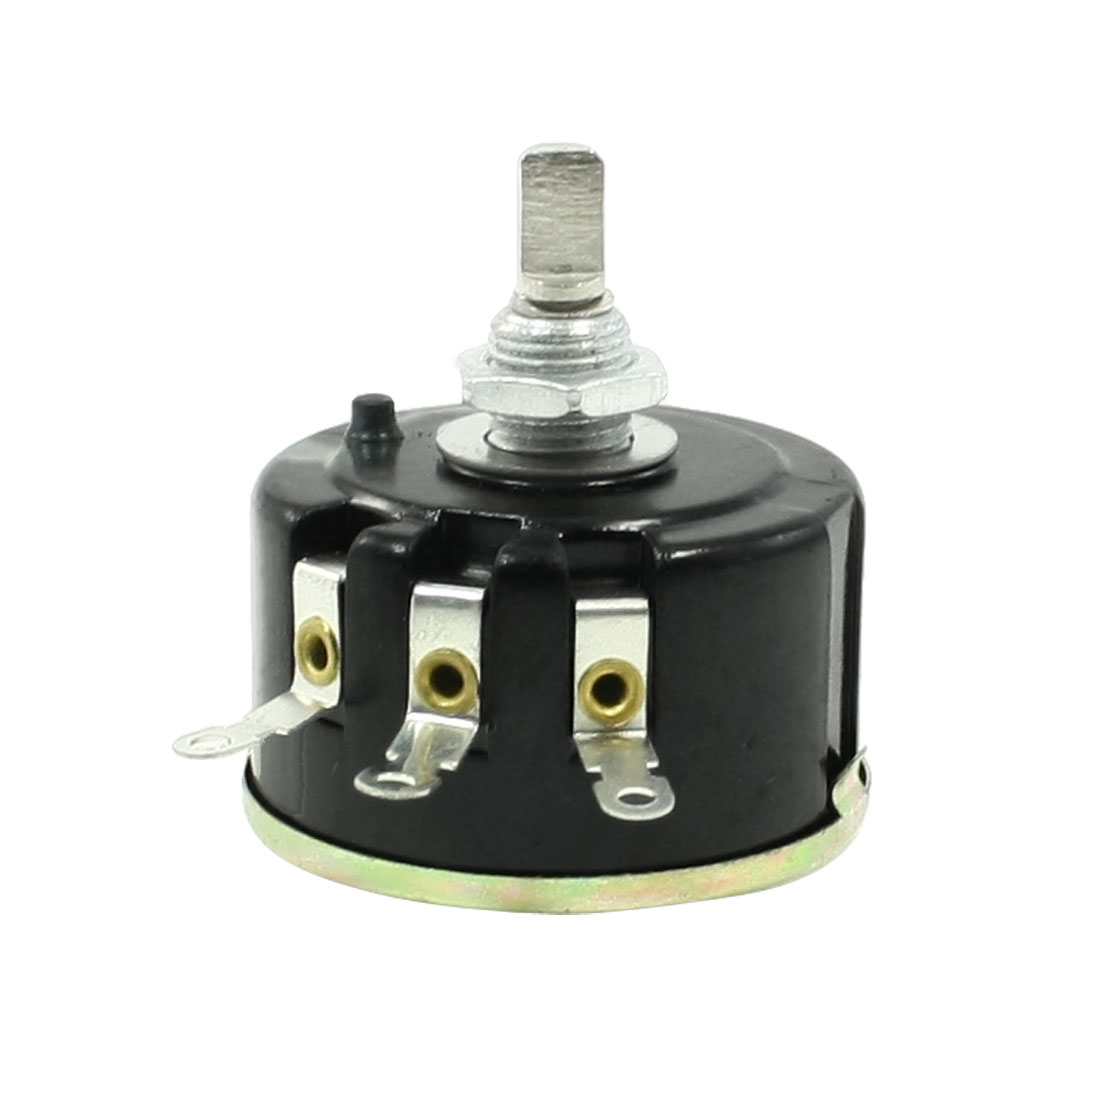 1K Ohm 5% Tolerance 6mm Shaft 3 Terminals WX112(050) Wirewound Potentiometer